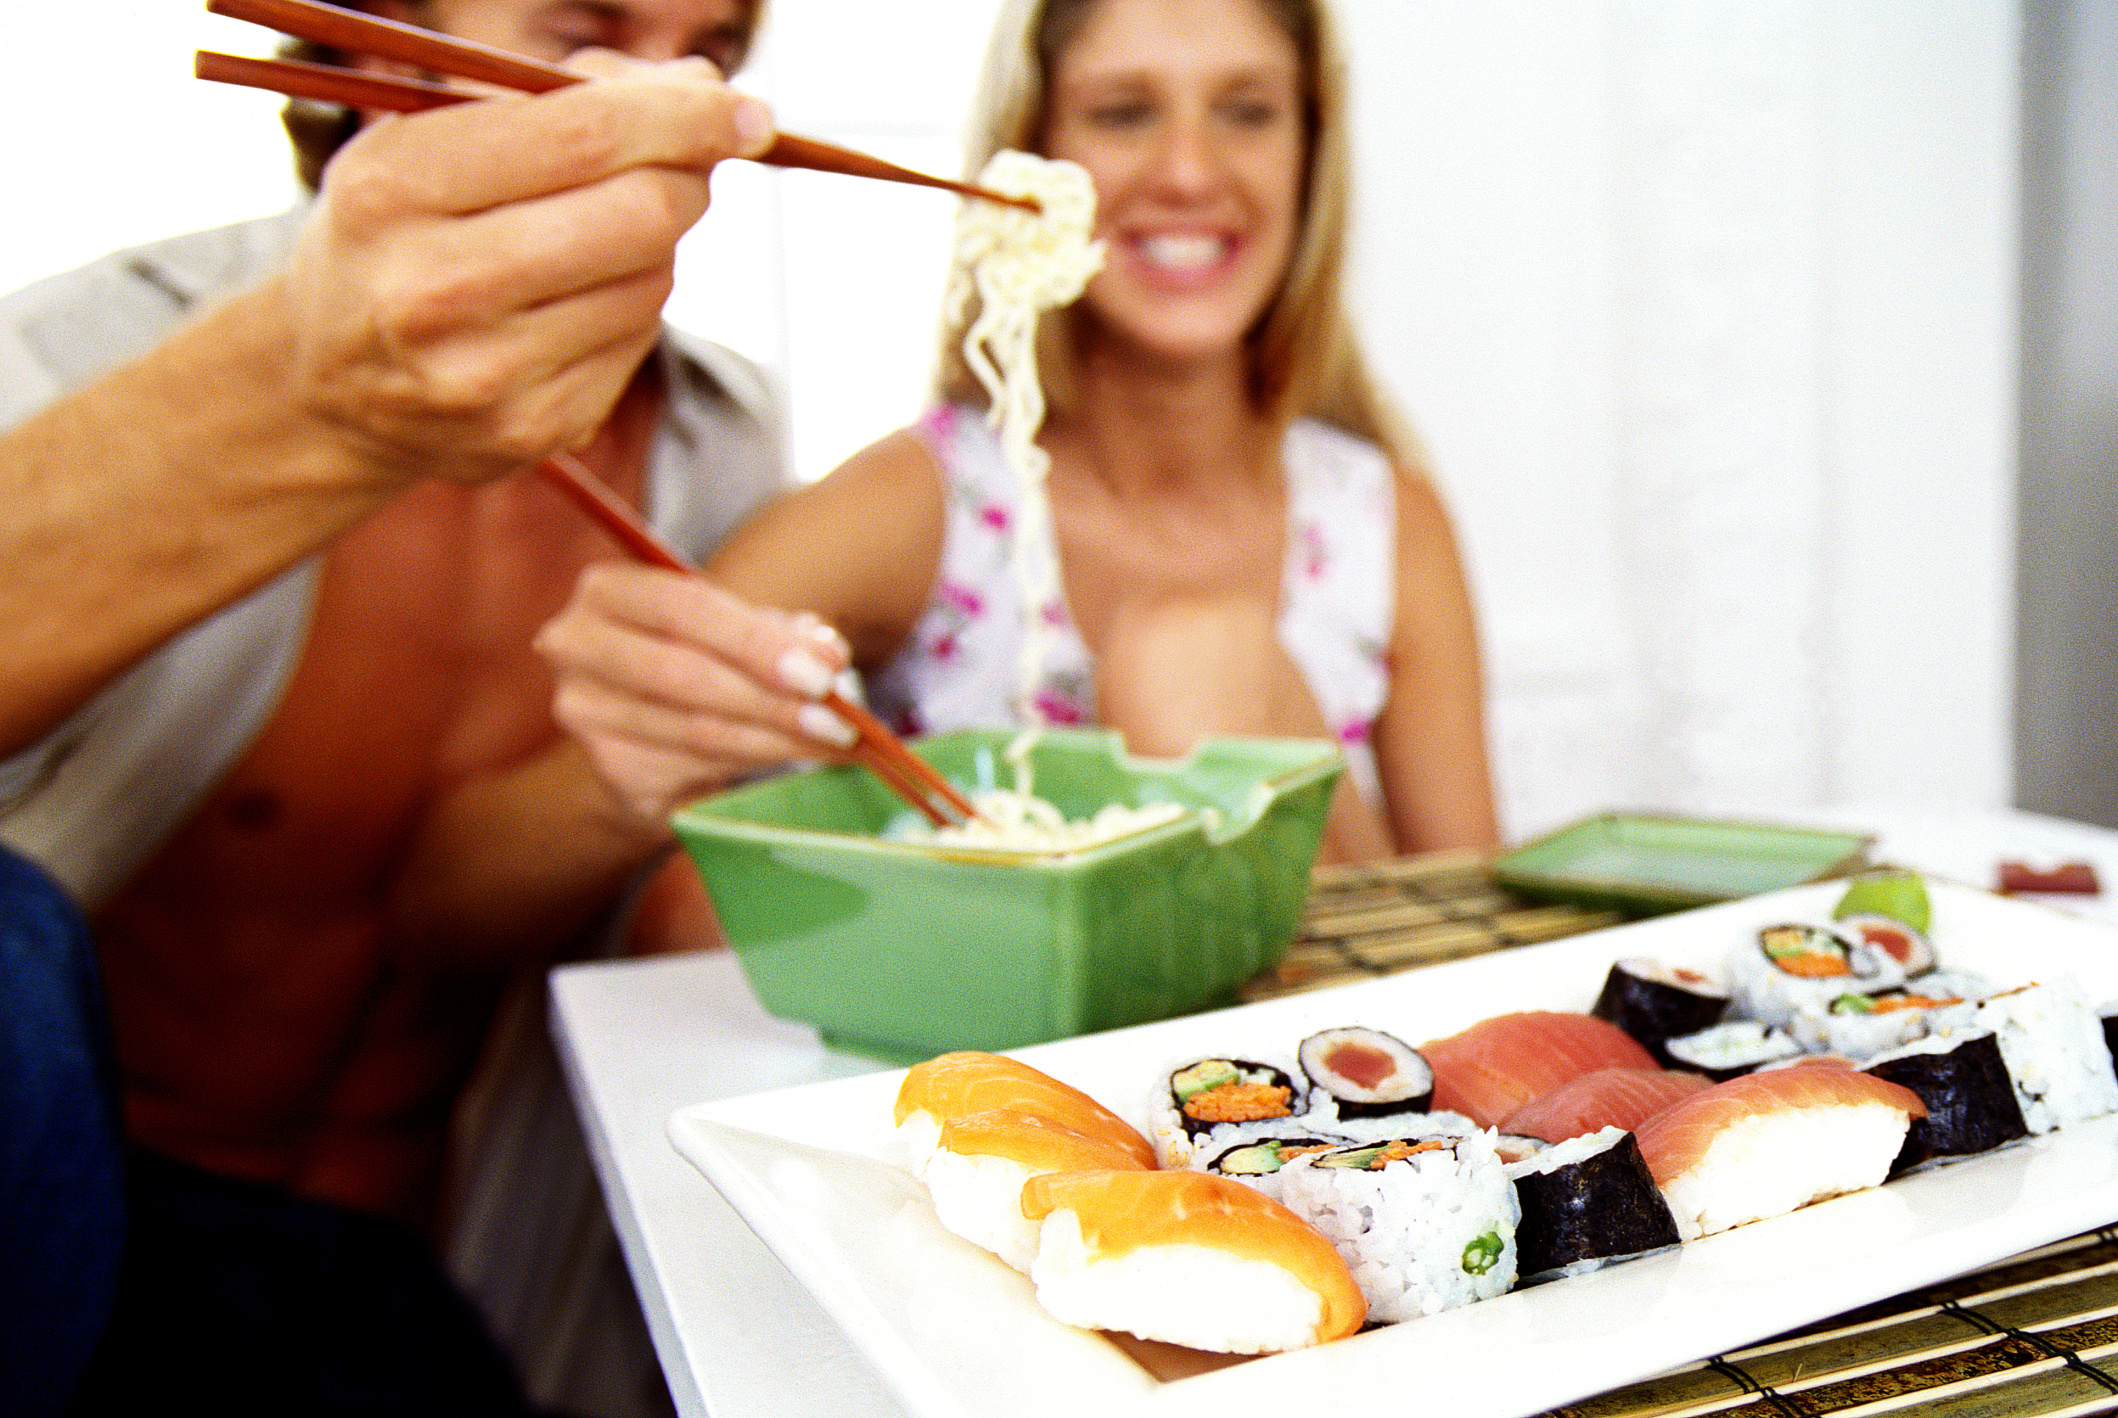 How To Lose Weight By Eating With Chopsticks